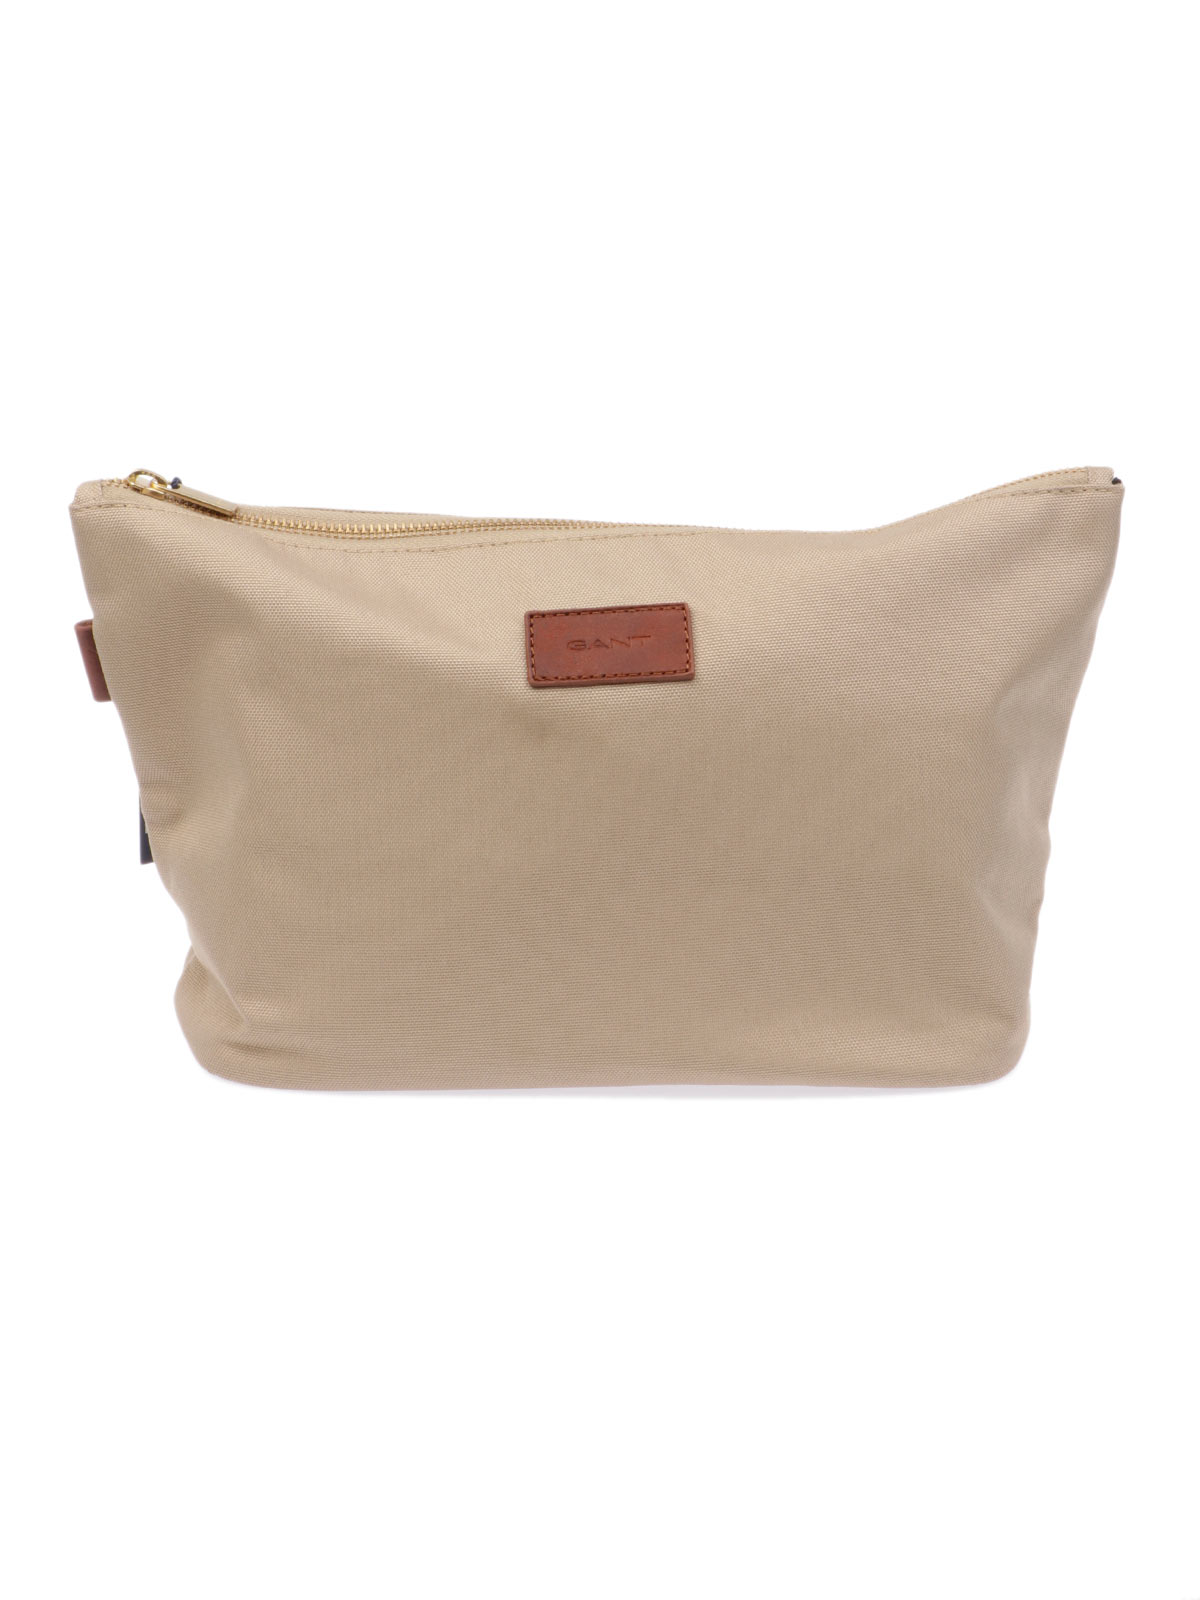 Picture of GANT | Women's Cosmetics Bag